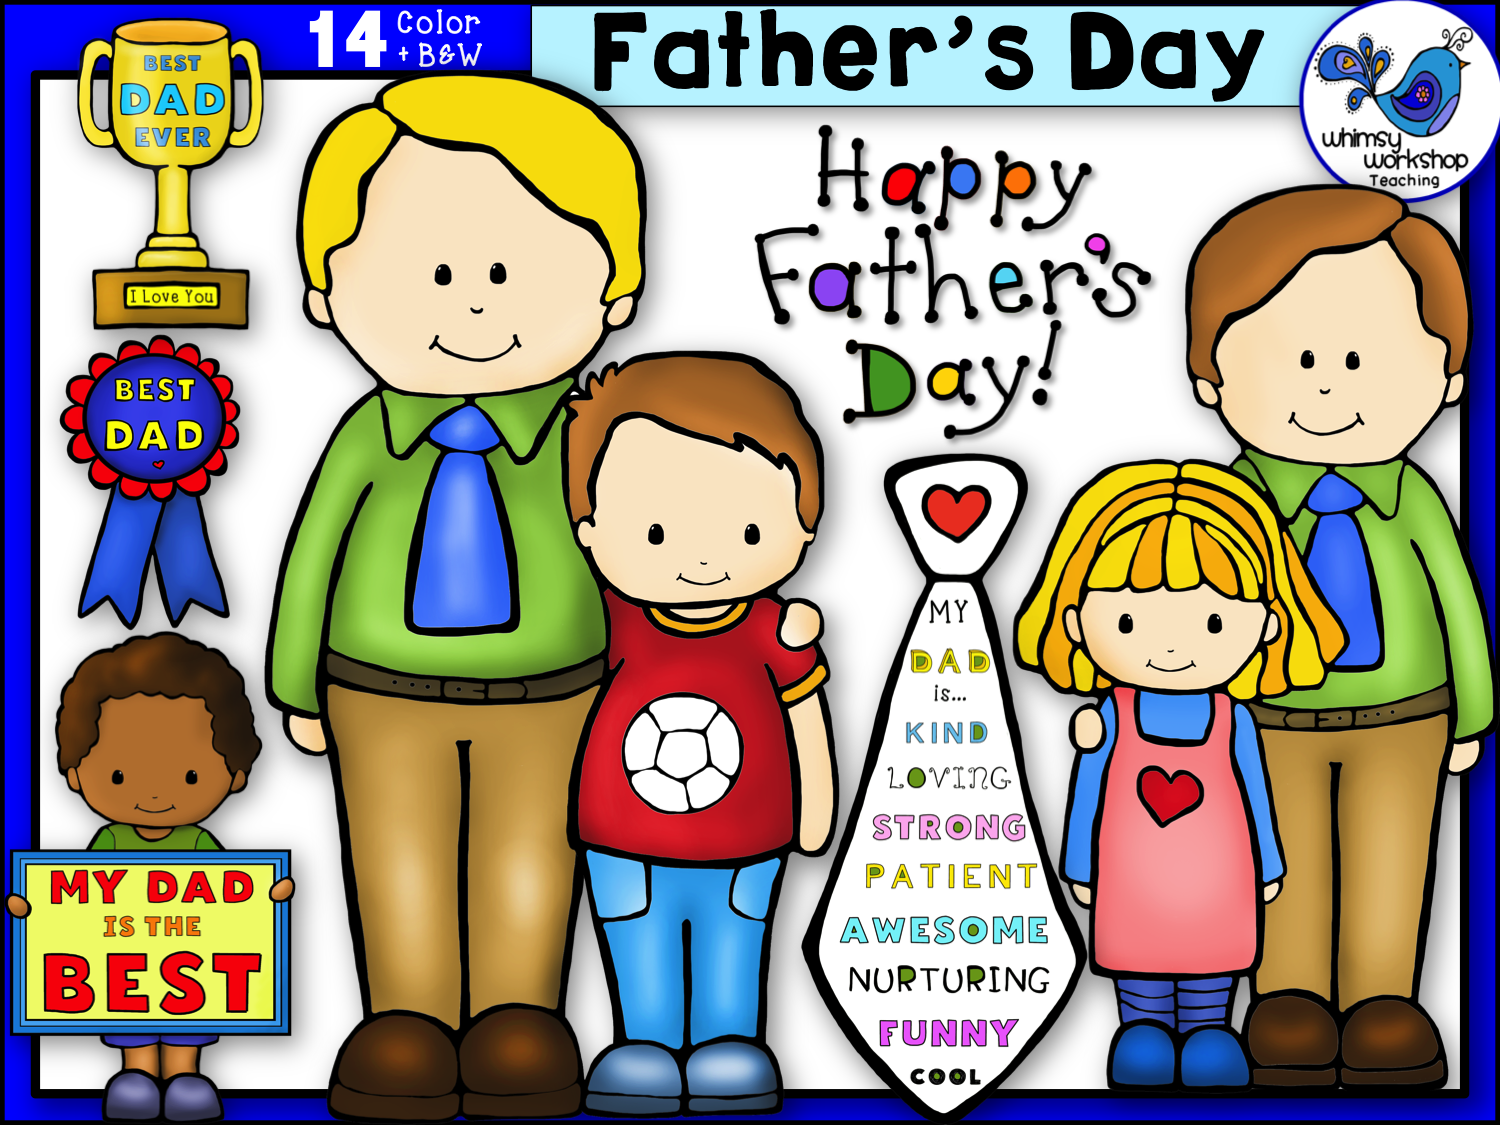 medium resolution of free new set of father s day clip art 14 graphics in color and black and white whimsy workshop teaching